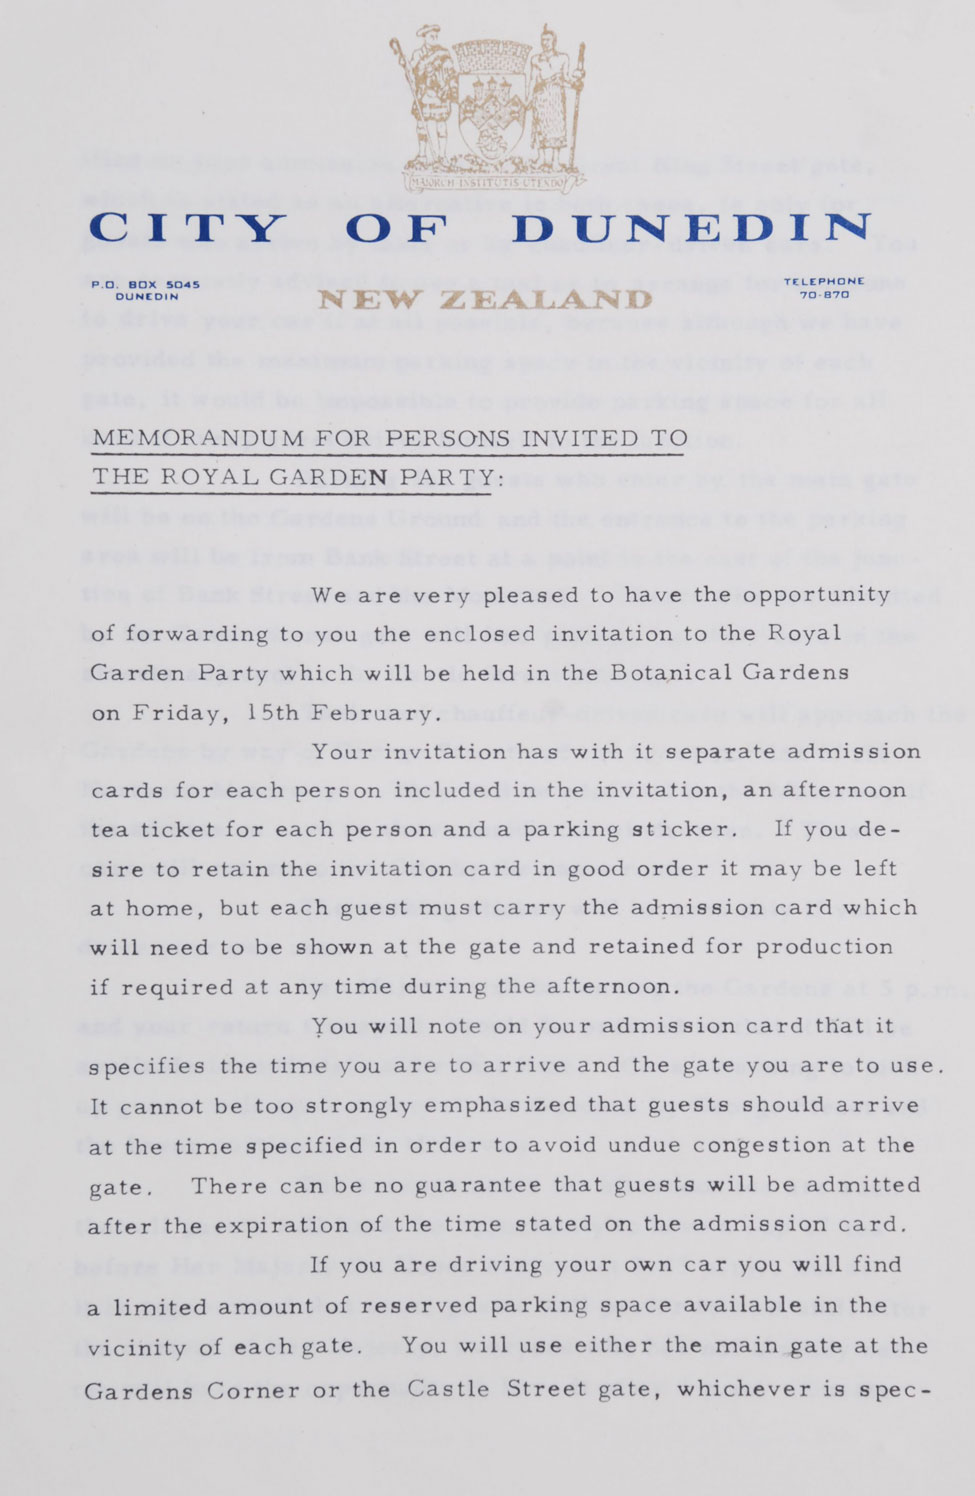 Memorandum for Persons Invited to the Royal Garden Party.